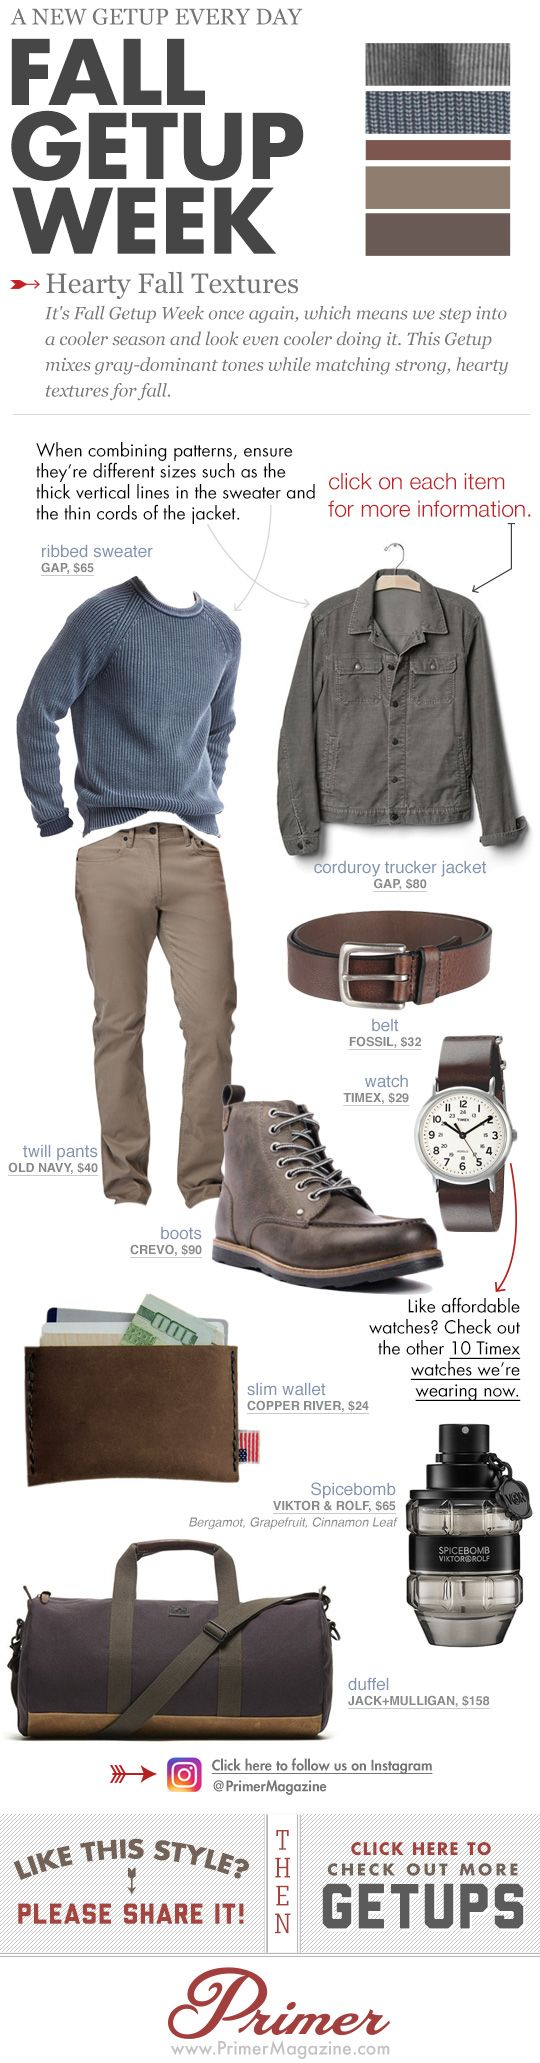 It's Fall Getup Week once again, which means we step into a cooler season and look even cooler doing it. This Getup mixes gray-dominant tones while matching strong, hearty textures for fall.